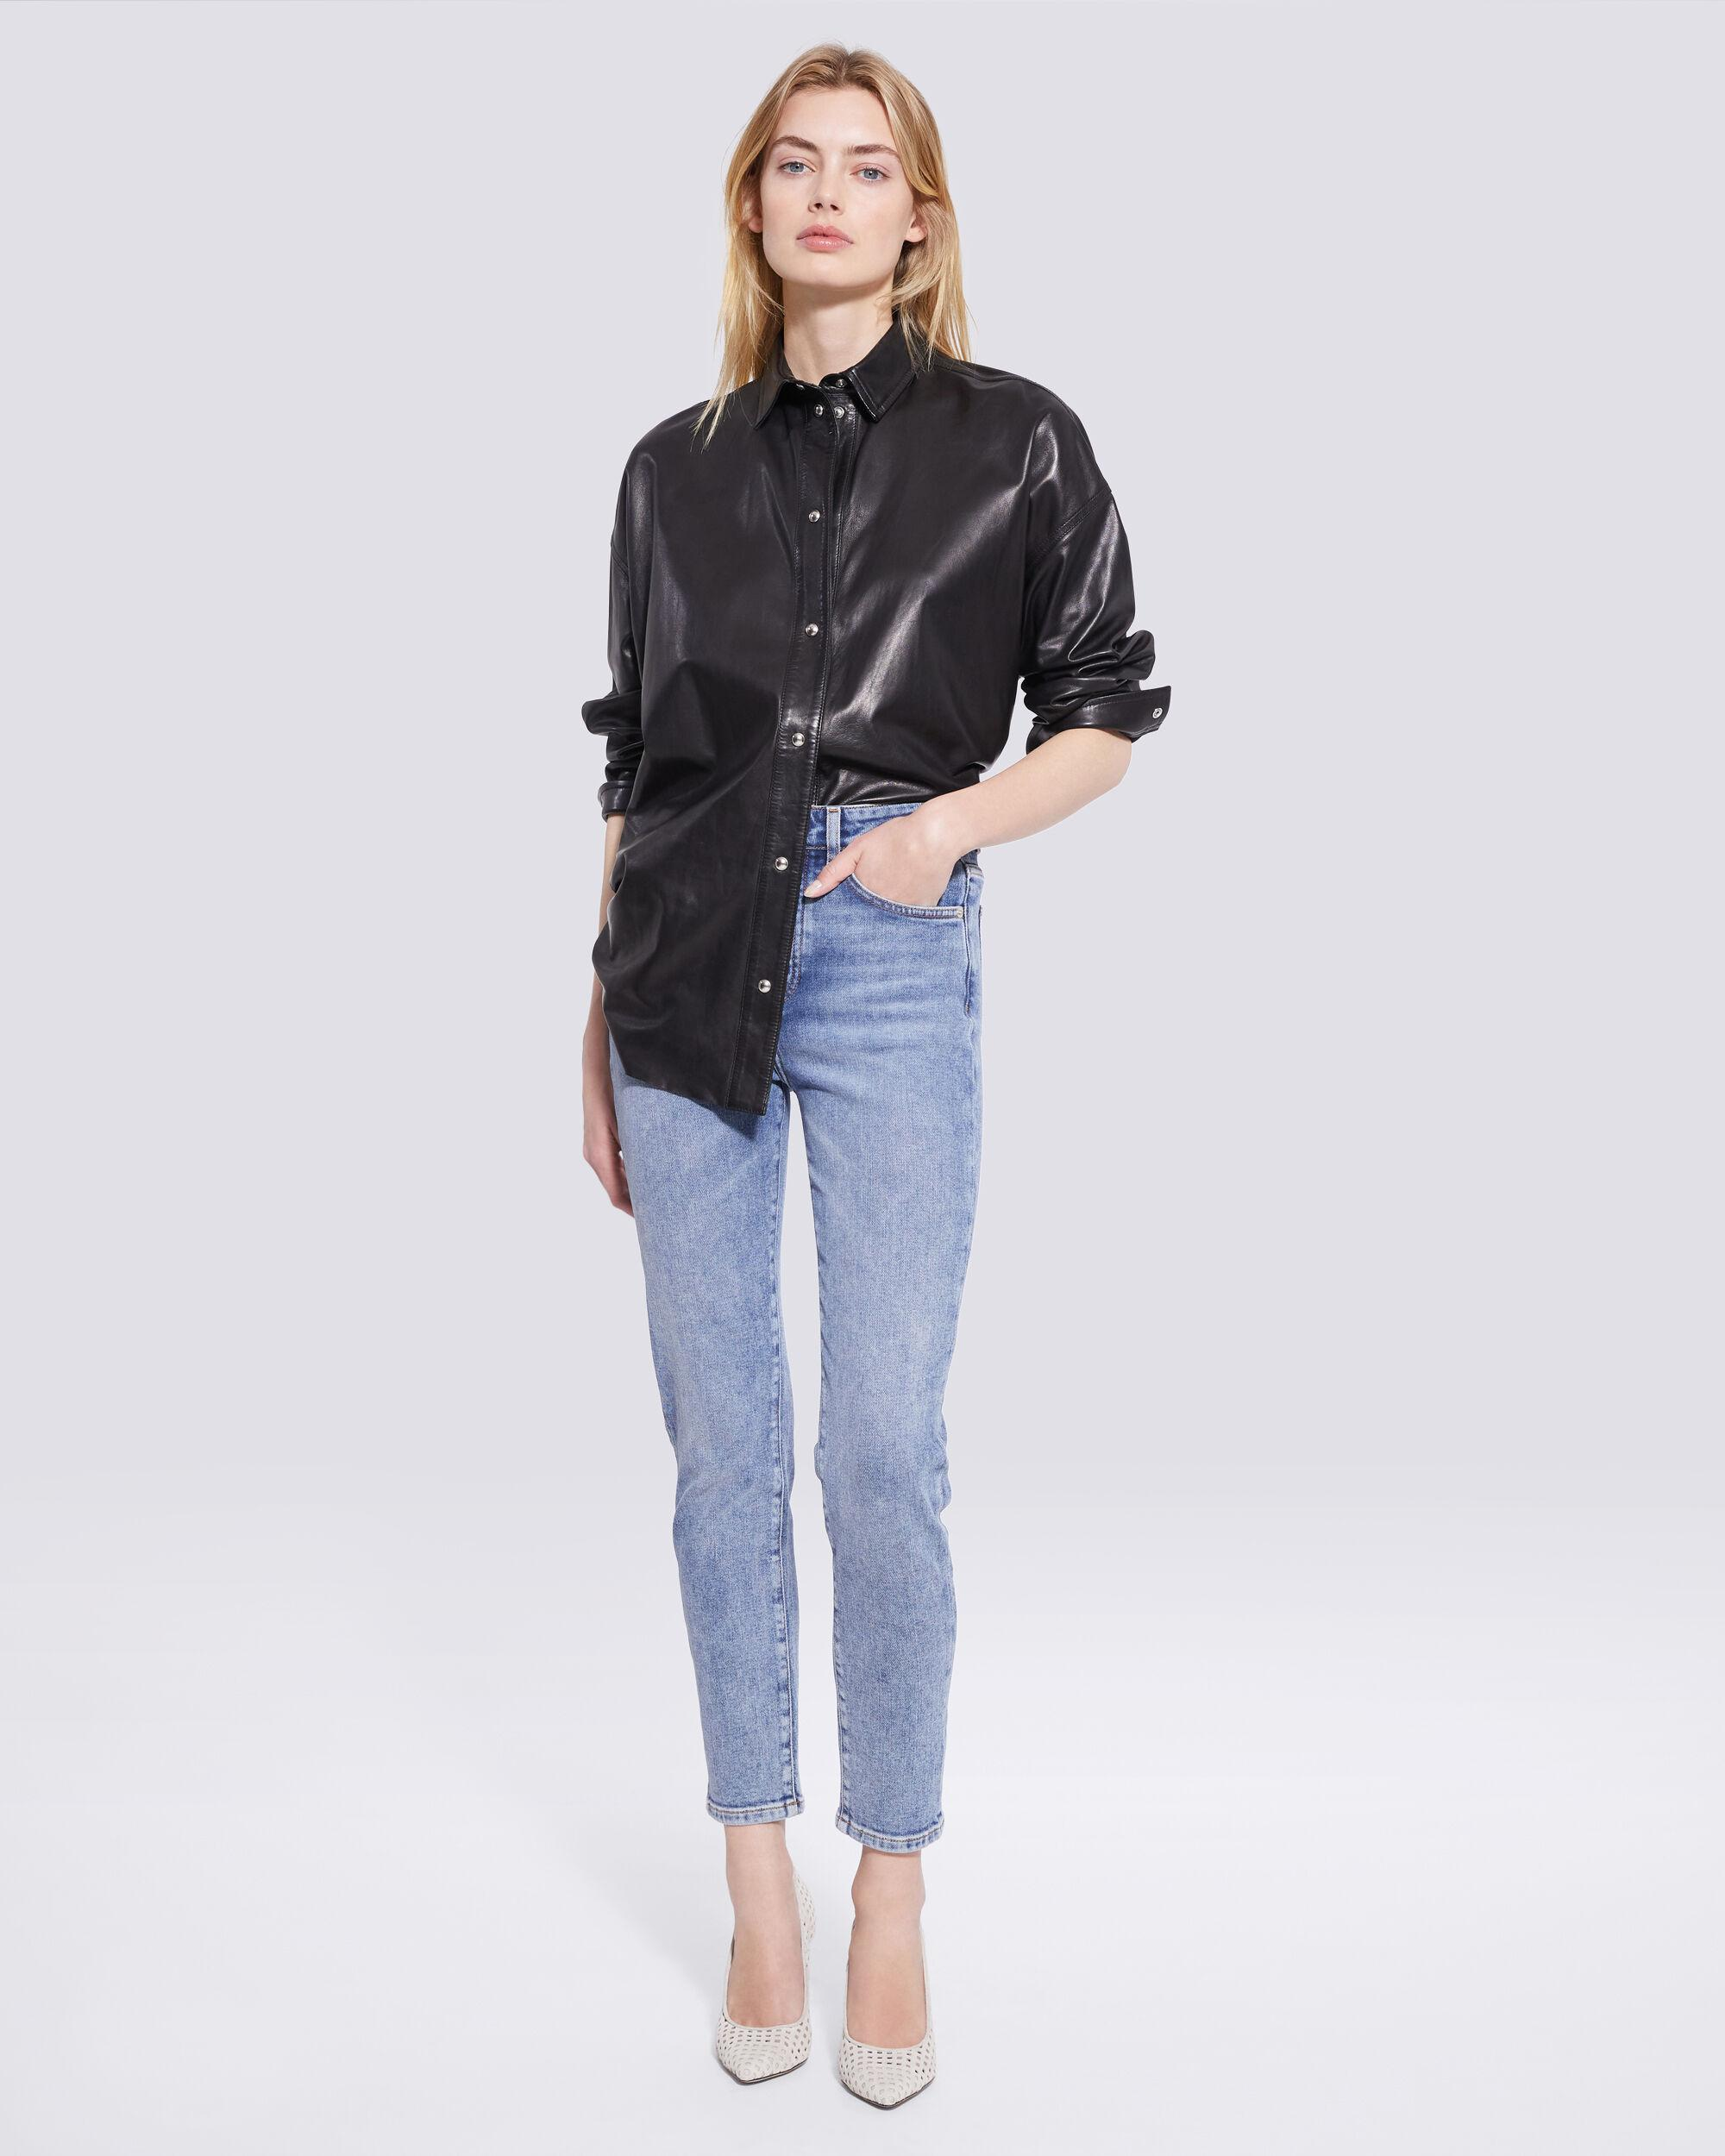 SYSTEM LEATHER BUTTON UP SHIRT 1